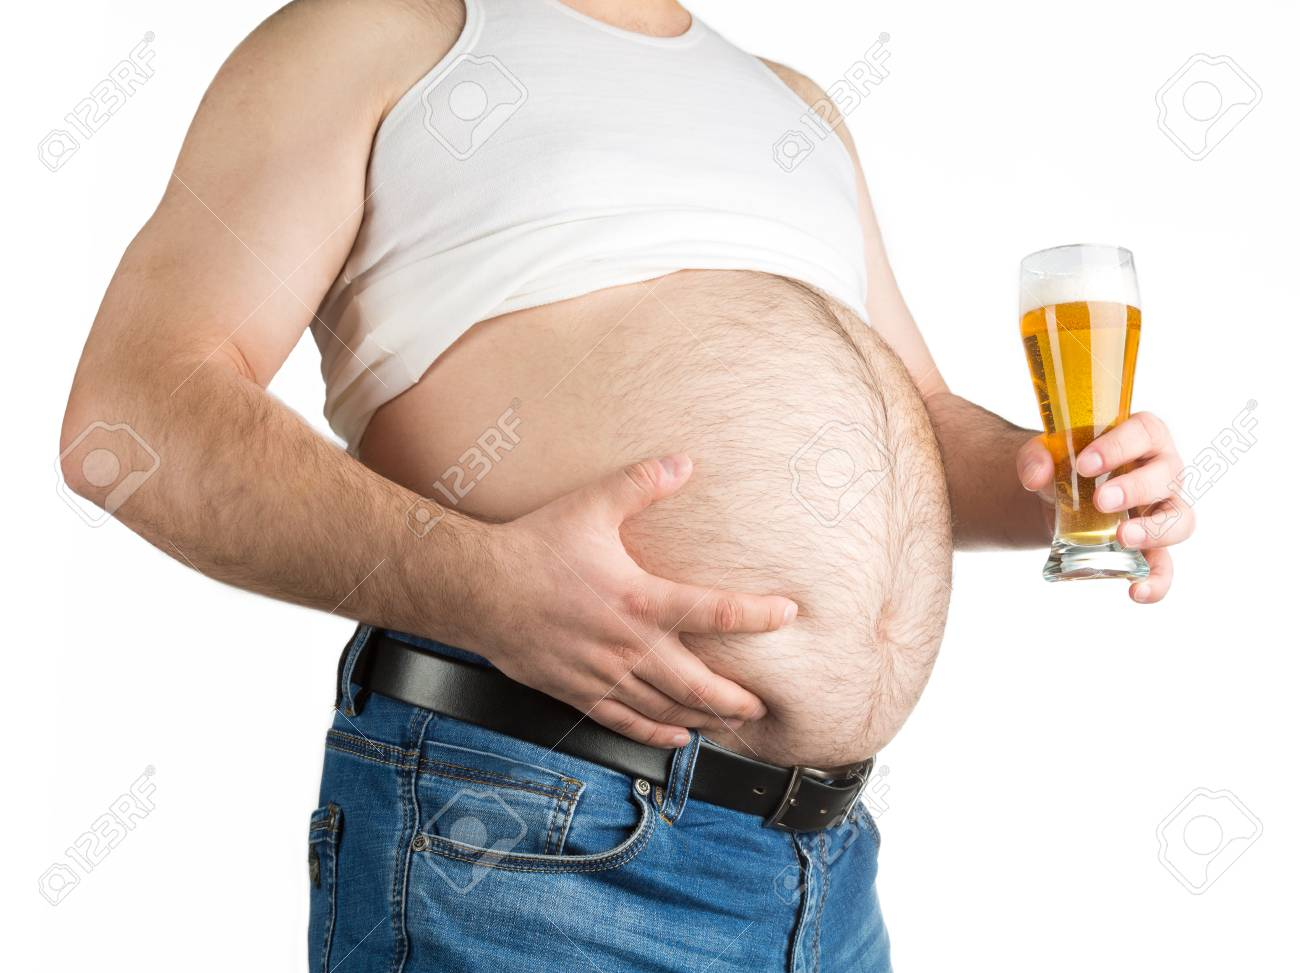 closeup fat belly with beer isolated on white background - 55576989